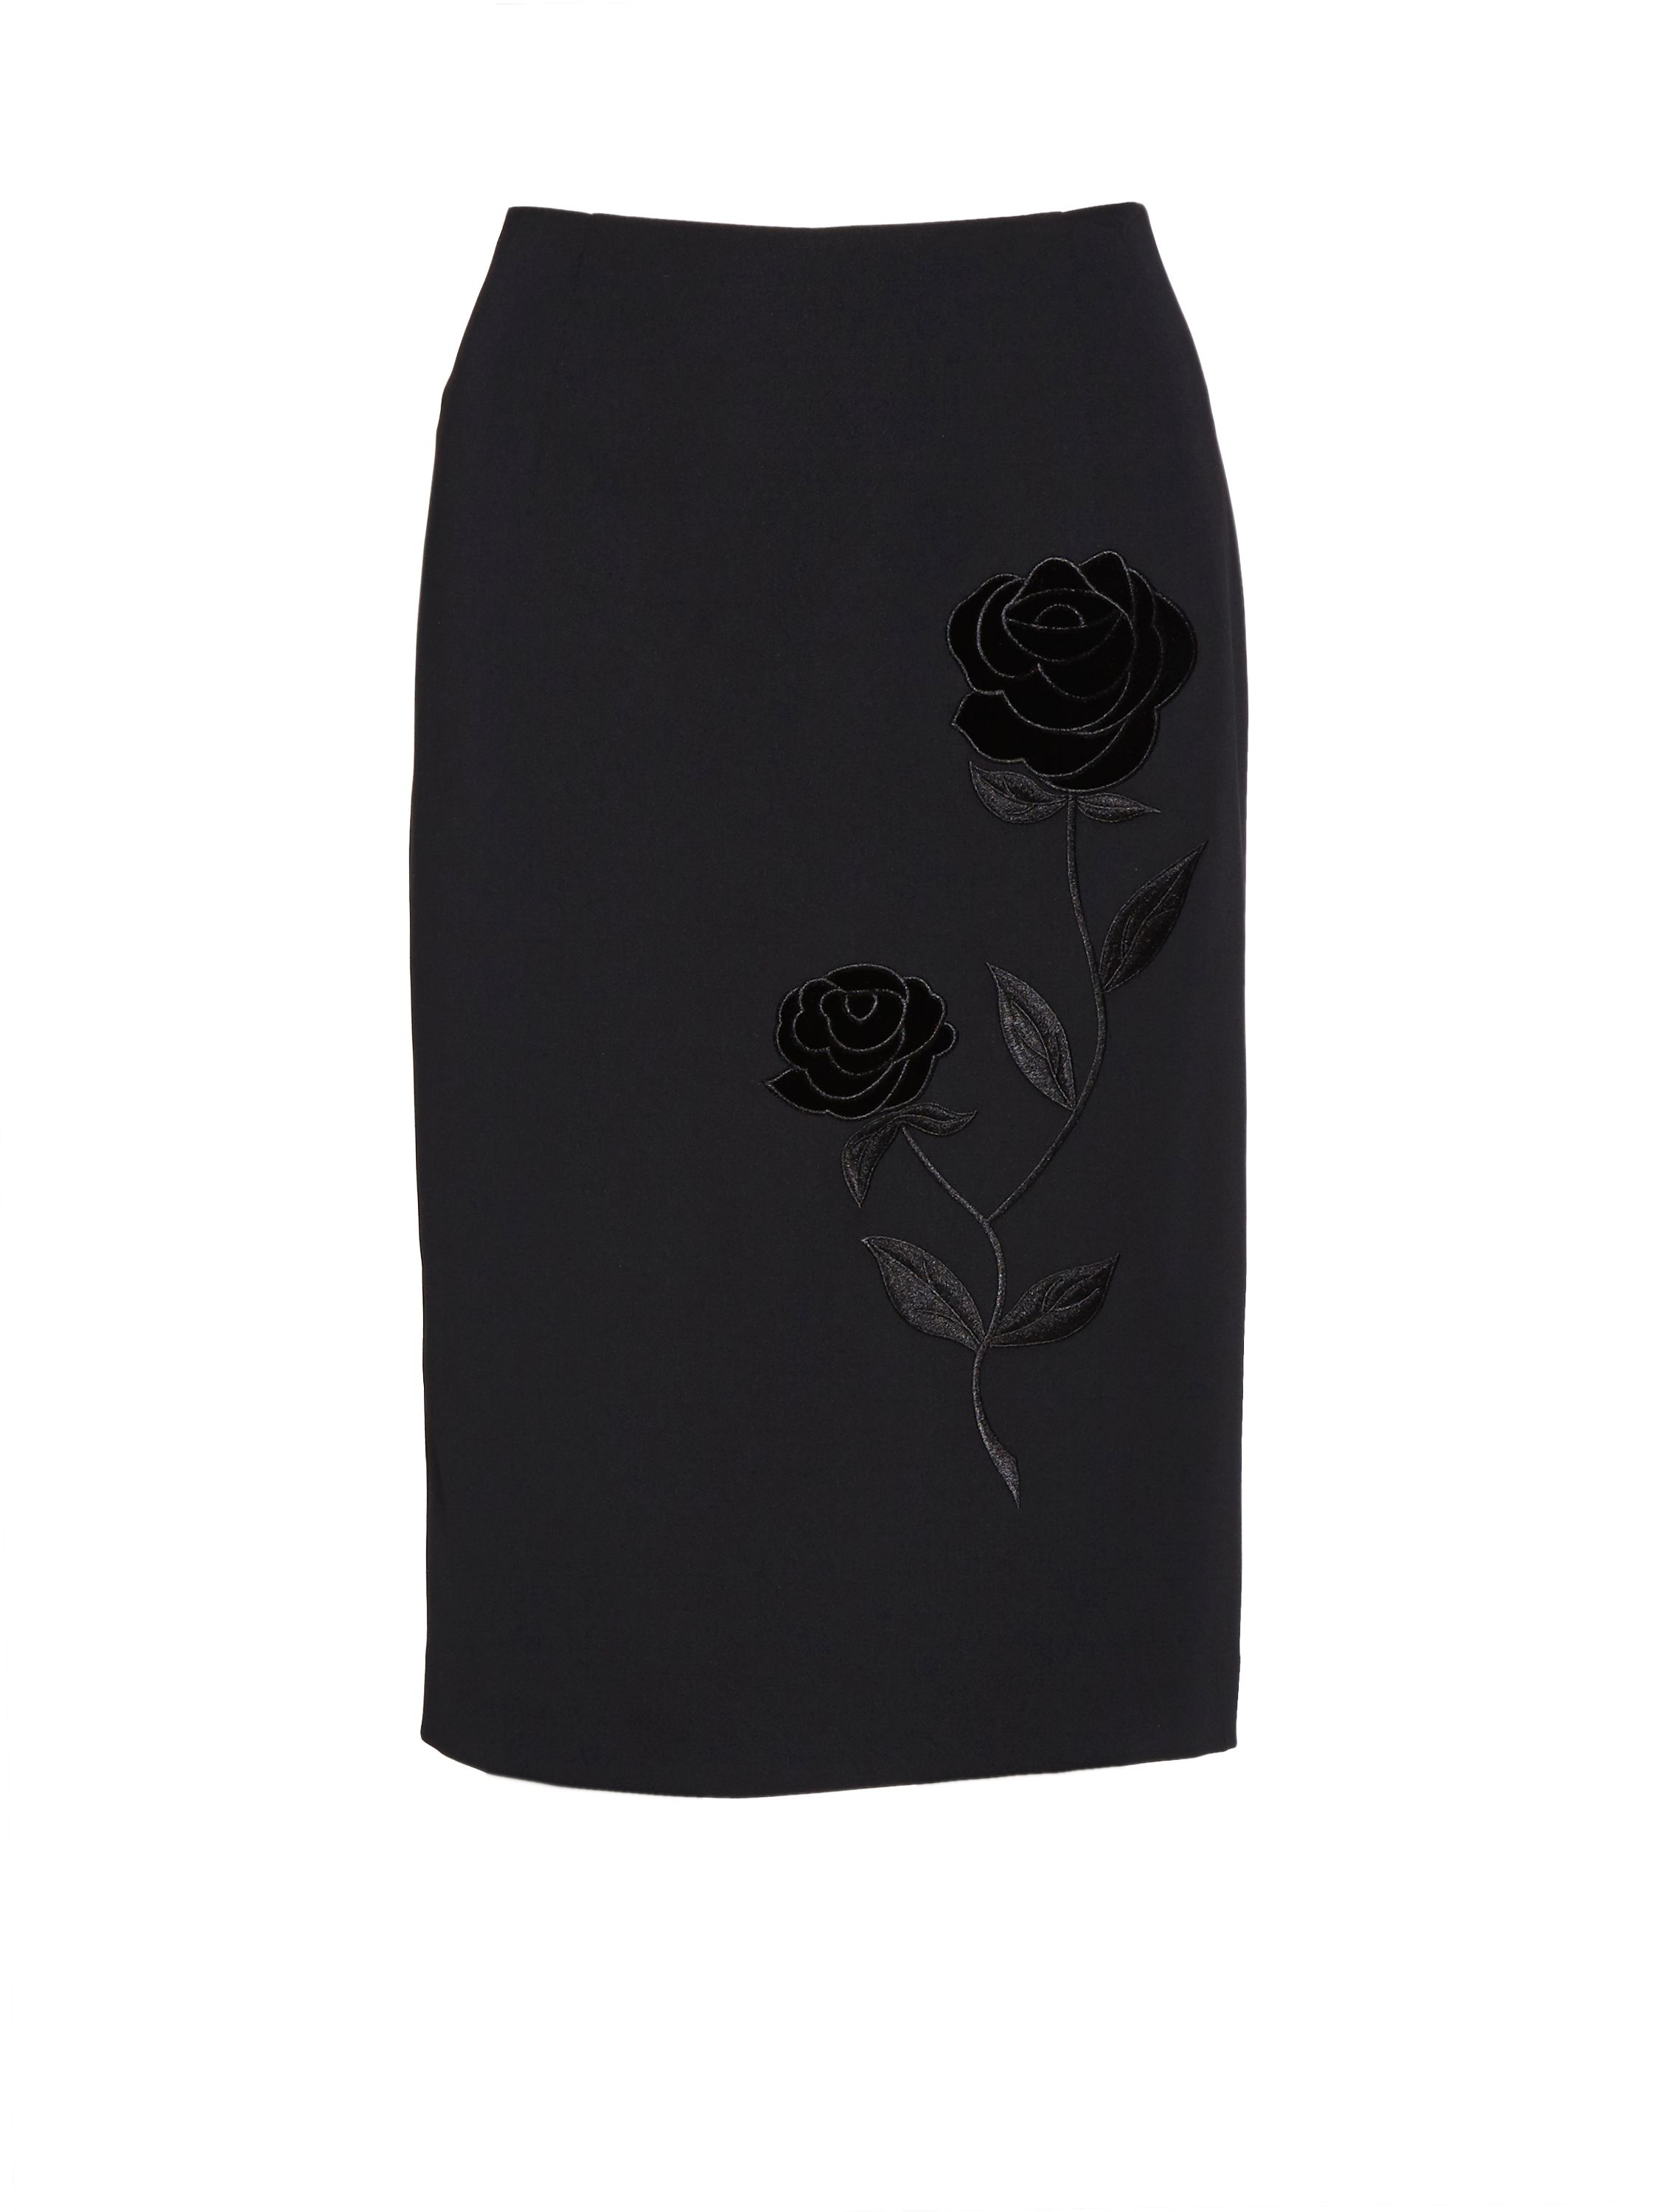 Gina Bacconi Moss crepe skirt with rose embroidery, Black